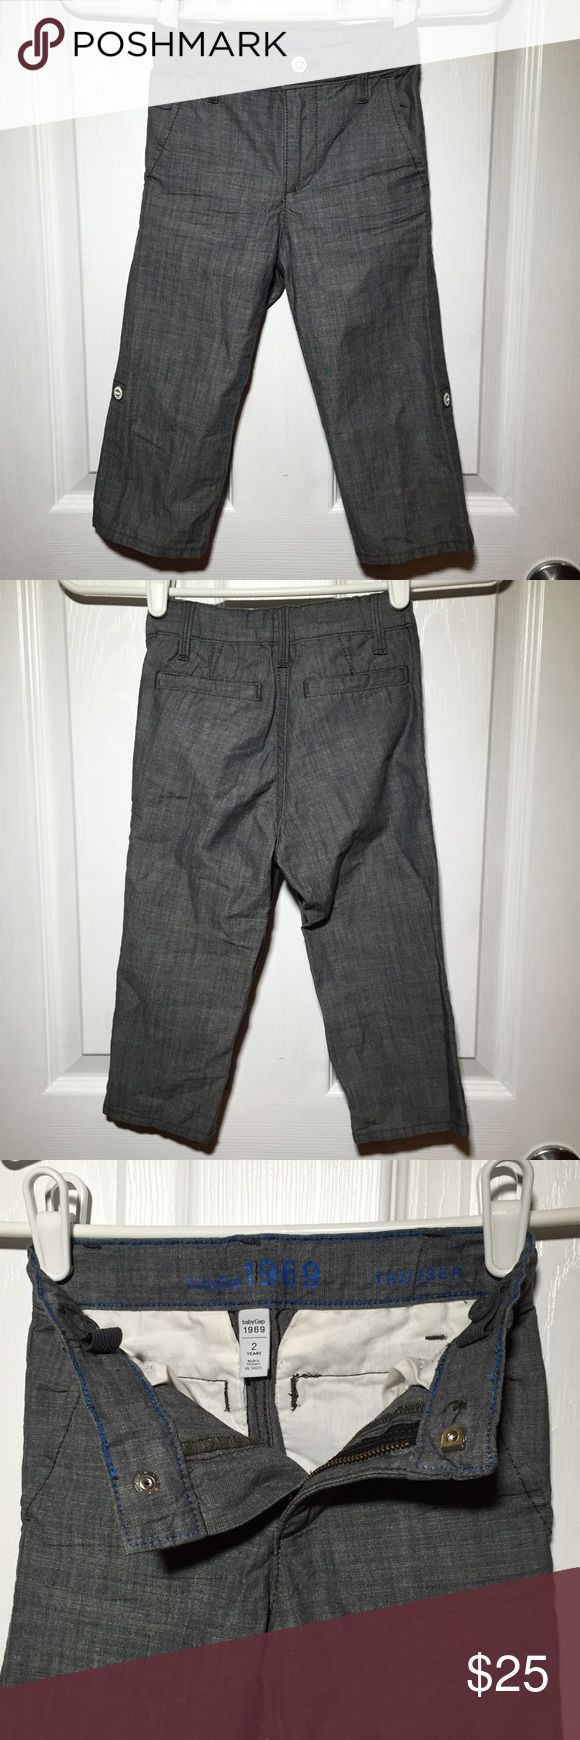 Toddler GAP Trouser 2t GAP Trouser. Grey chambray. Can wear rolled up or down. Clasp fly. Adjustable waist. Never worn. GAP Bottoms Formal